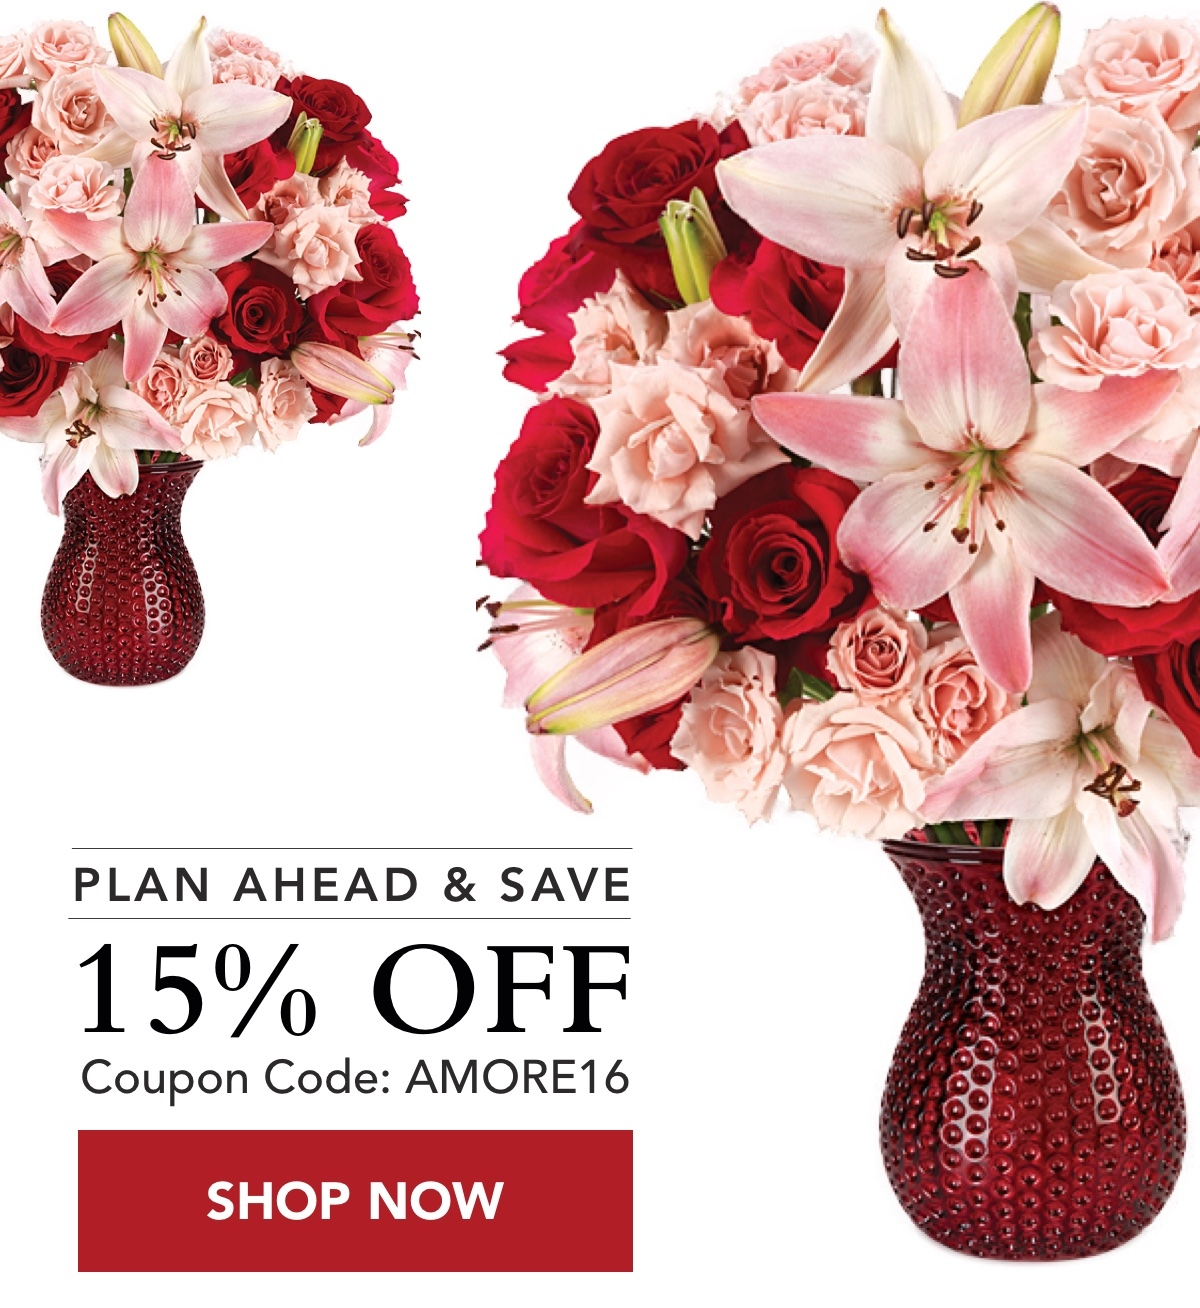 30% f Calyx Flowers Coupon Code 2017